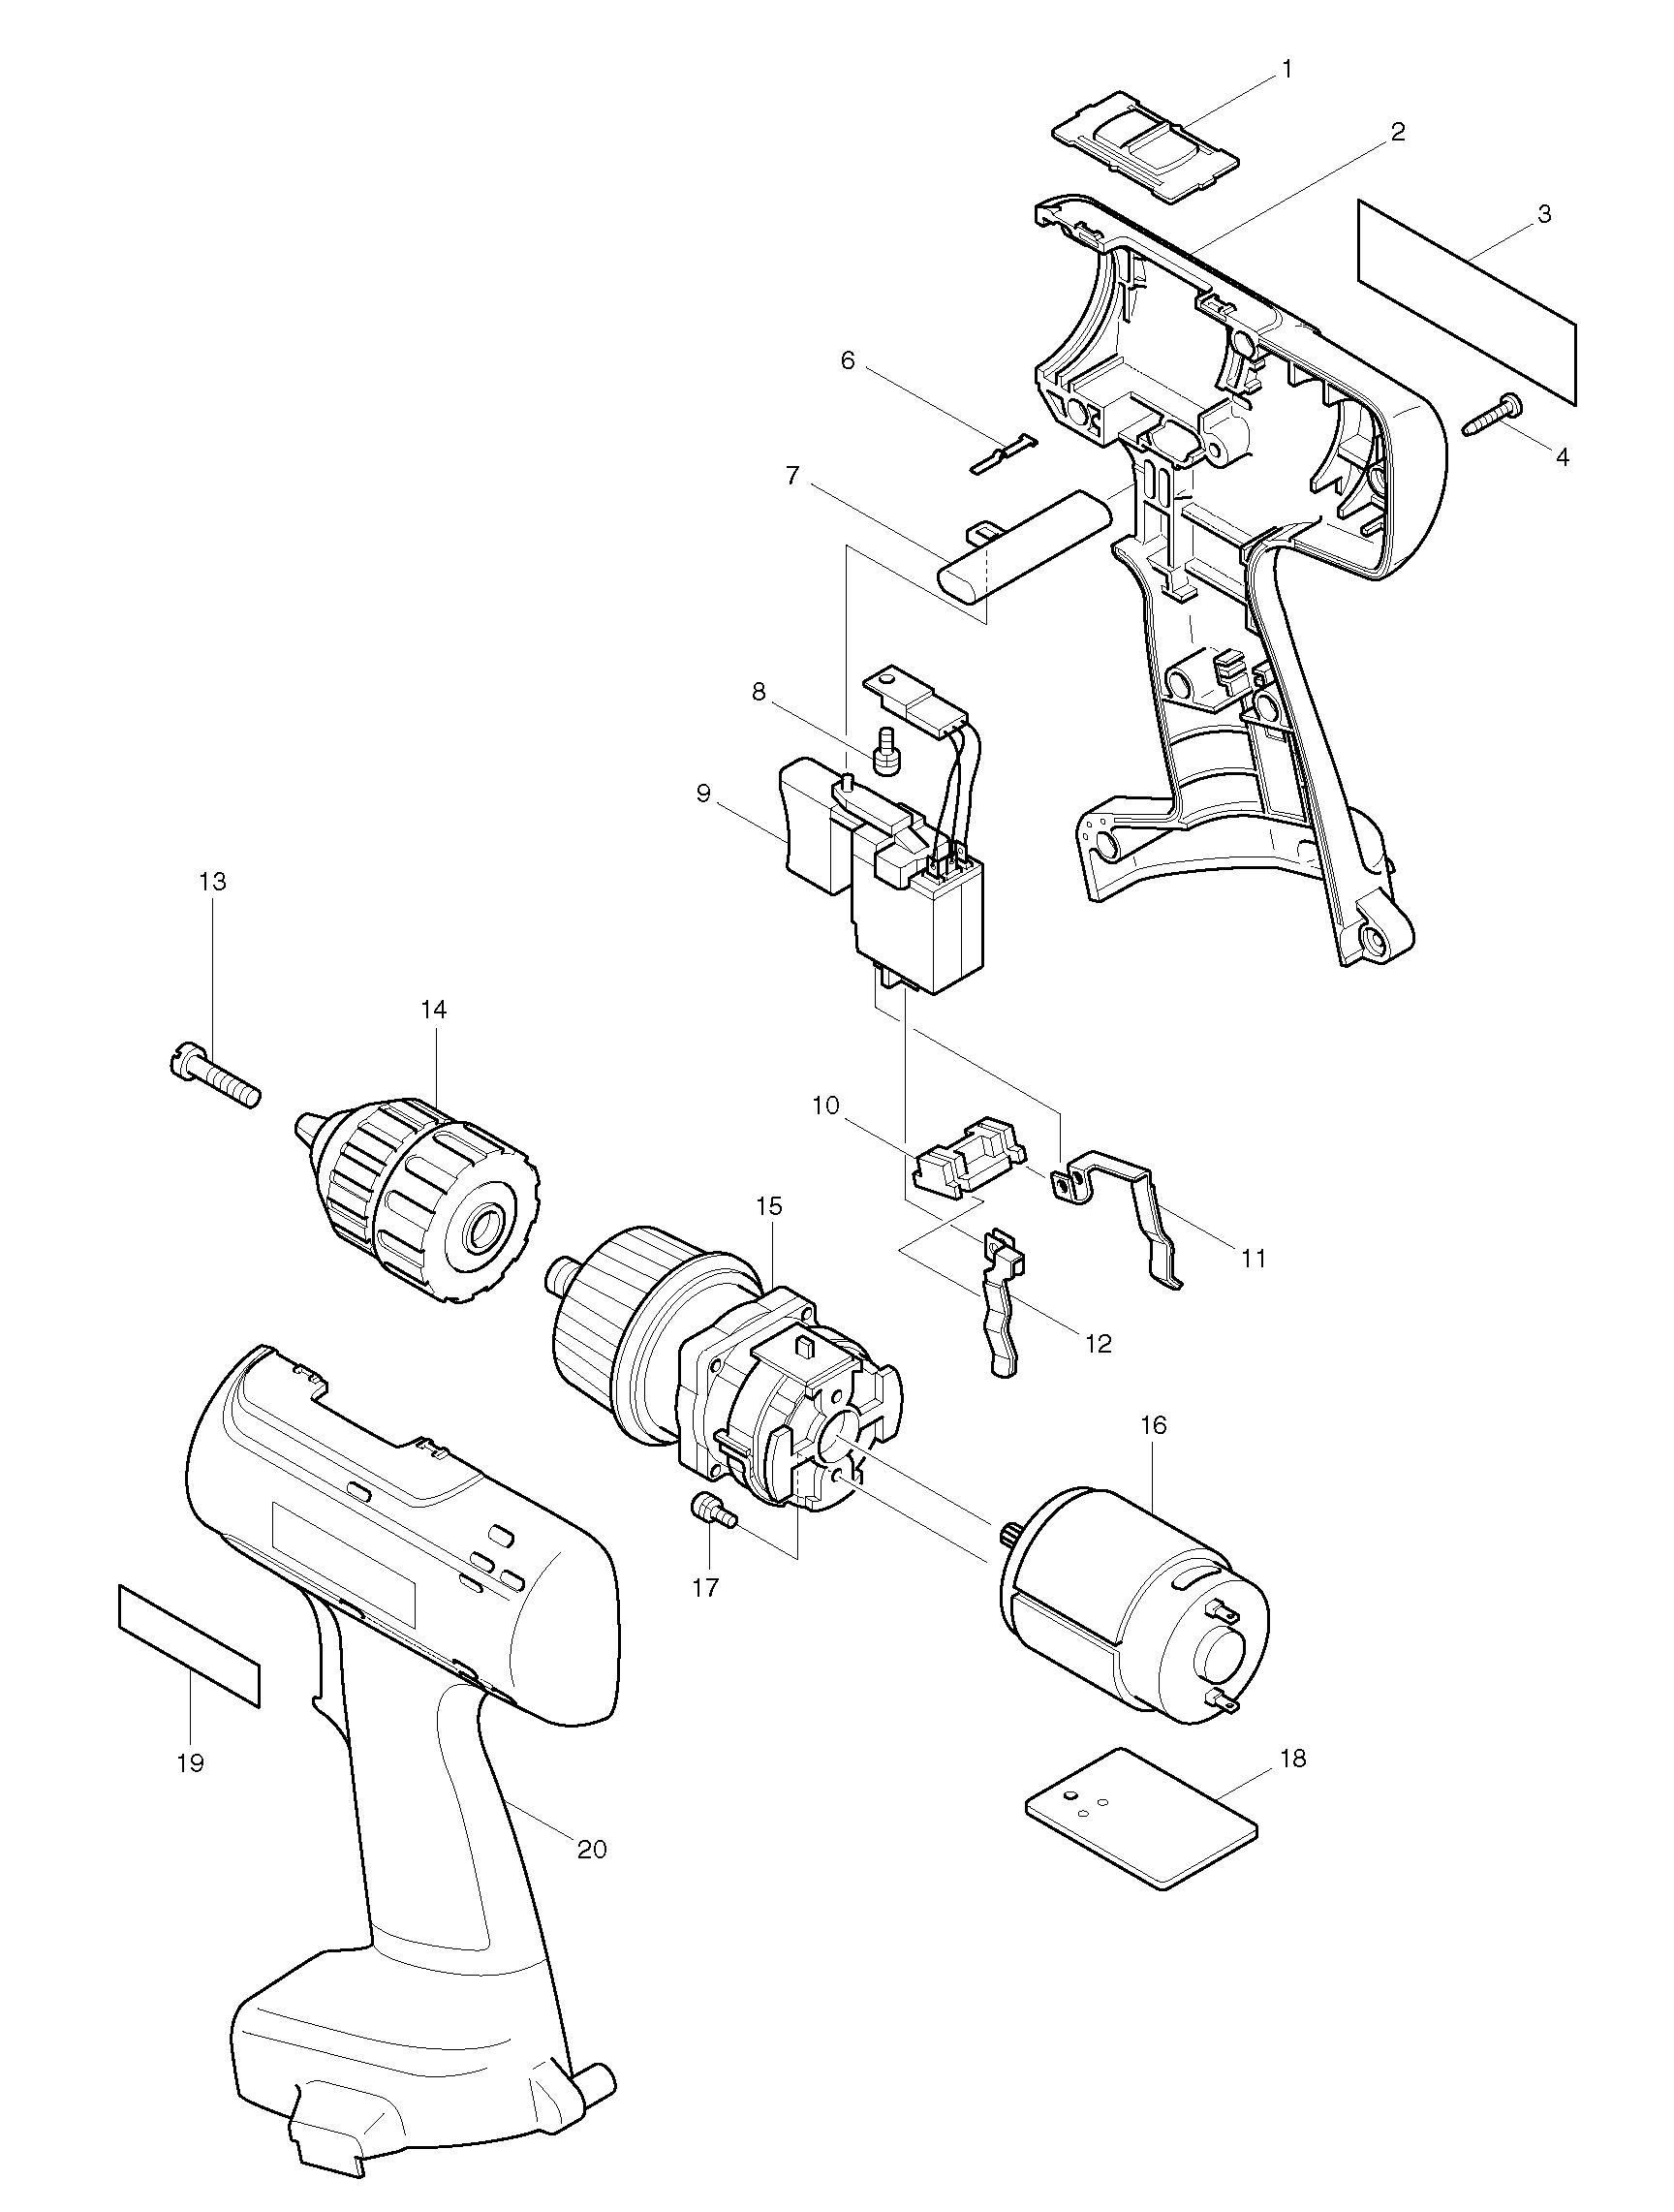 Spares for Makita 6228d Drill/driver SPARE_6228D from